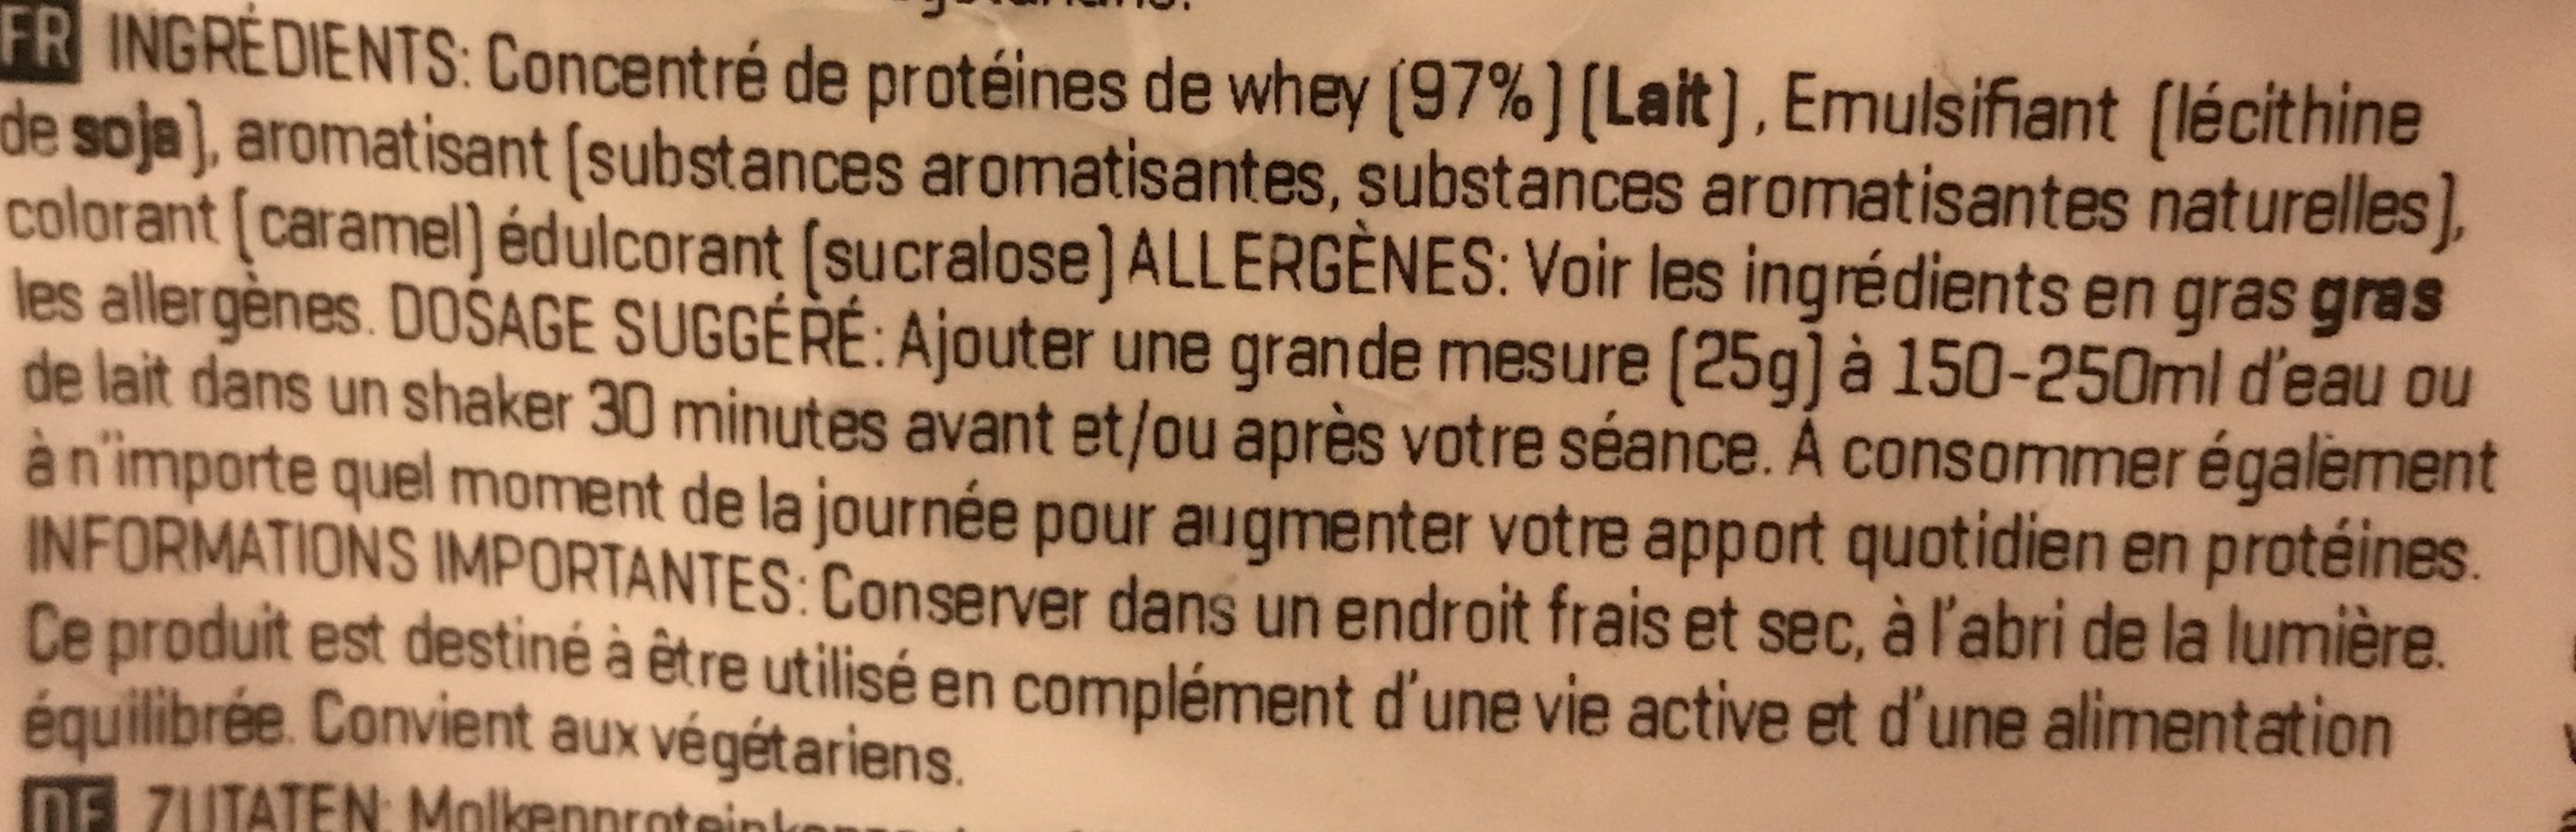 Impact Whey Protein, Speculoos - Ingrédients - fr